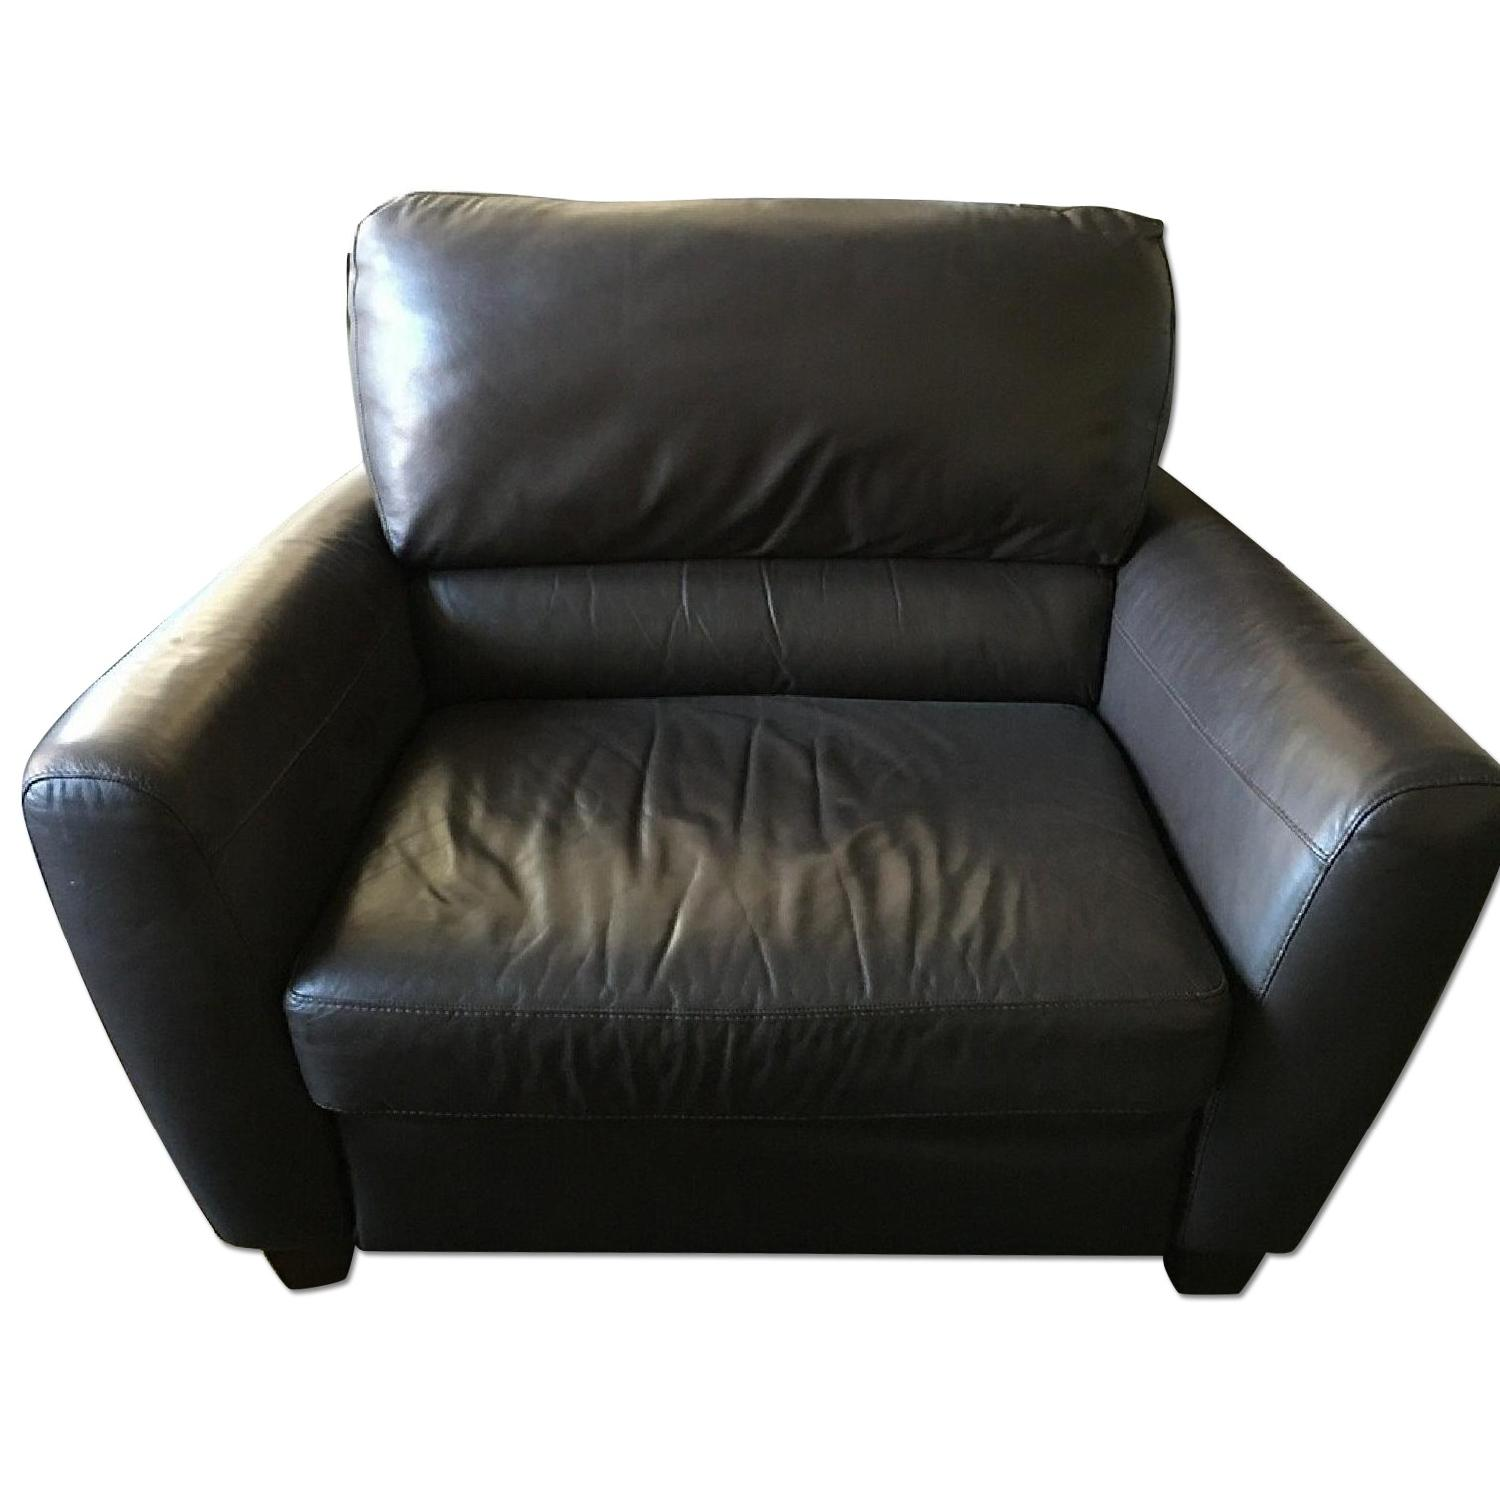 Macy's Brown Leather Reclining Sofa + Armchair - image-6